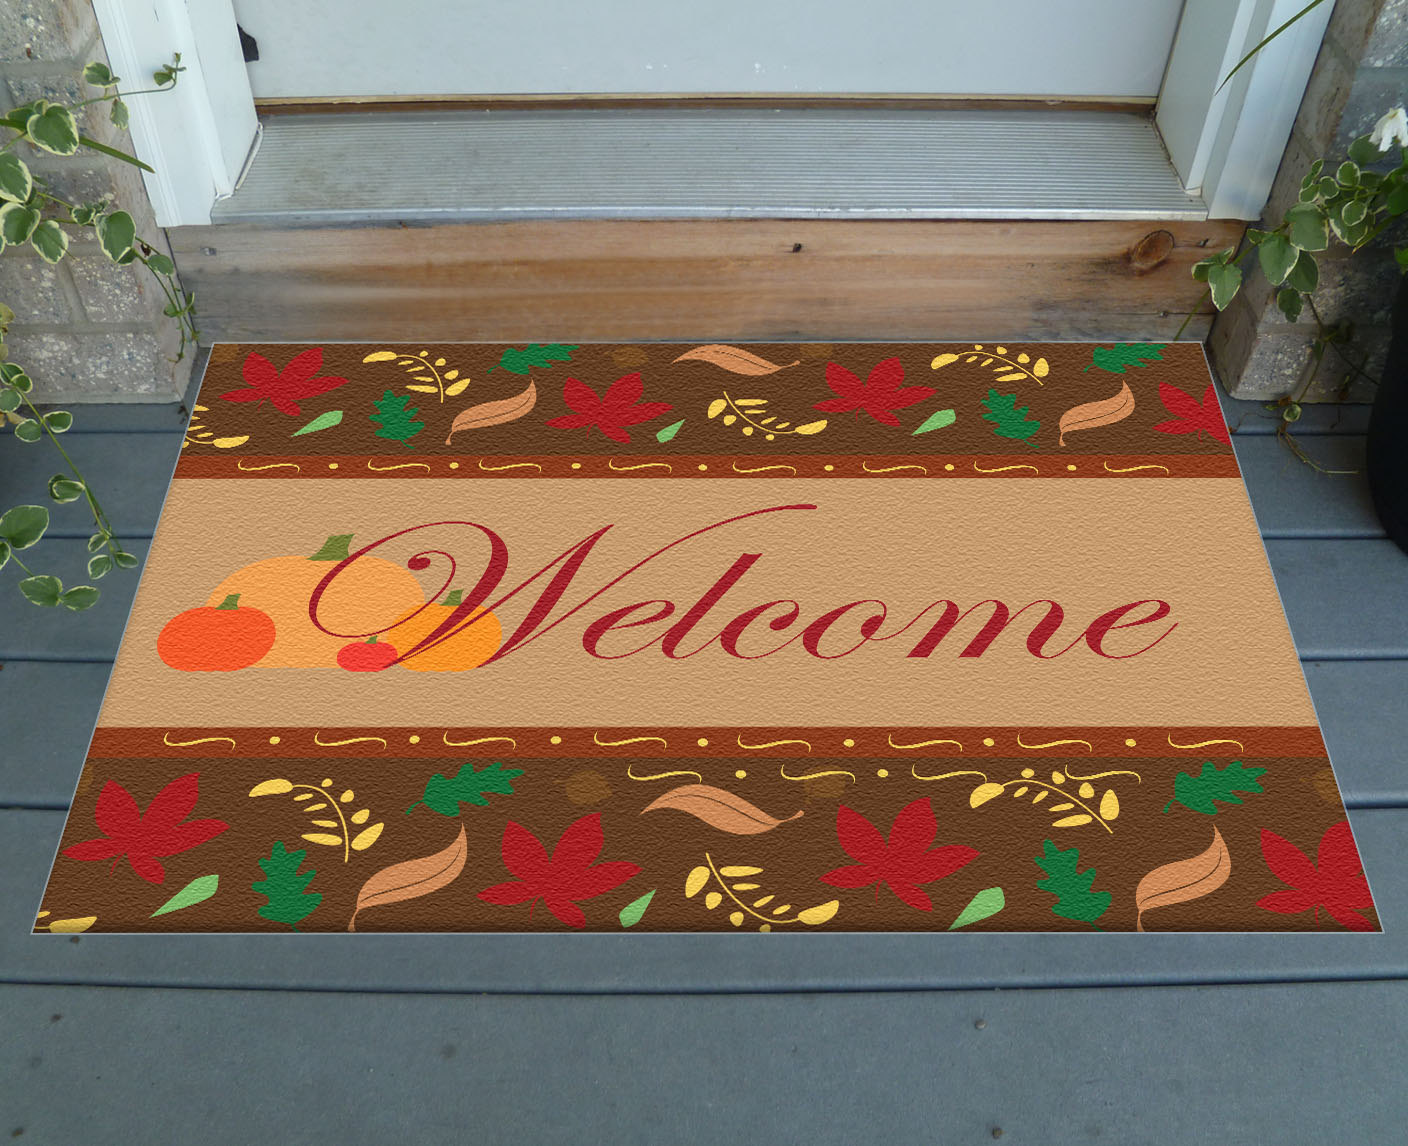 Decorative fall welcome mat 36 x 24 indoor outdoor for Decorative door mats indoor